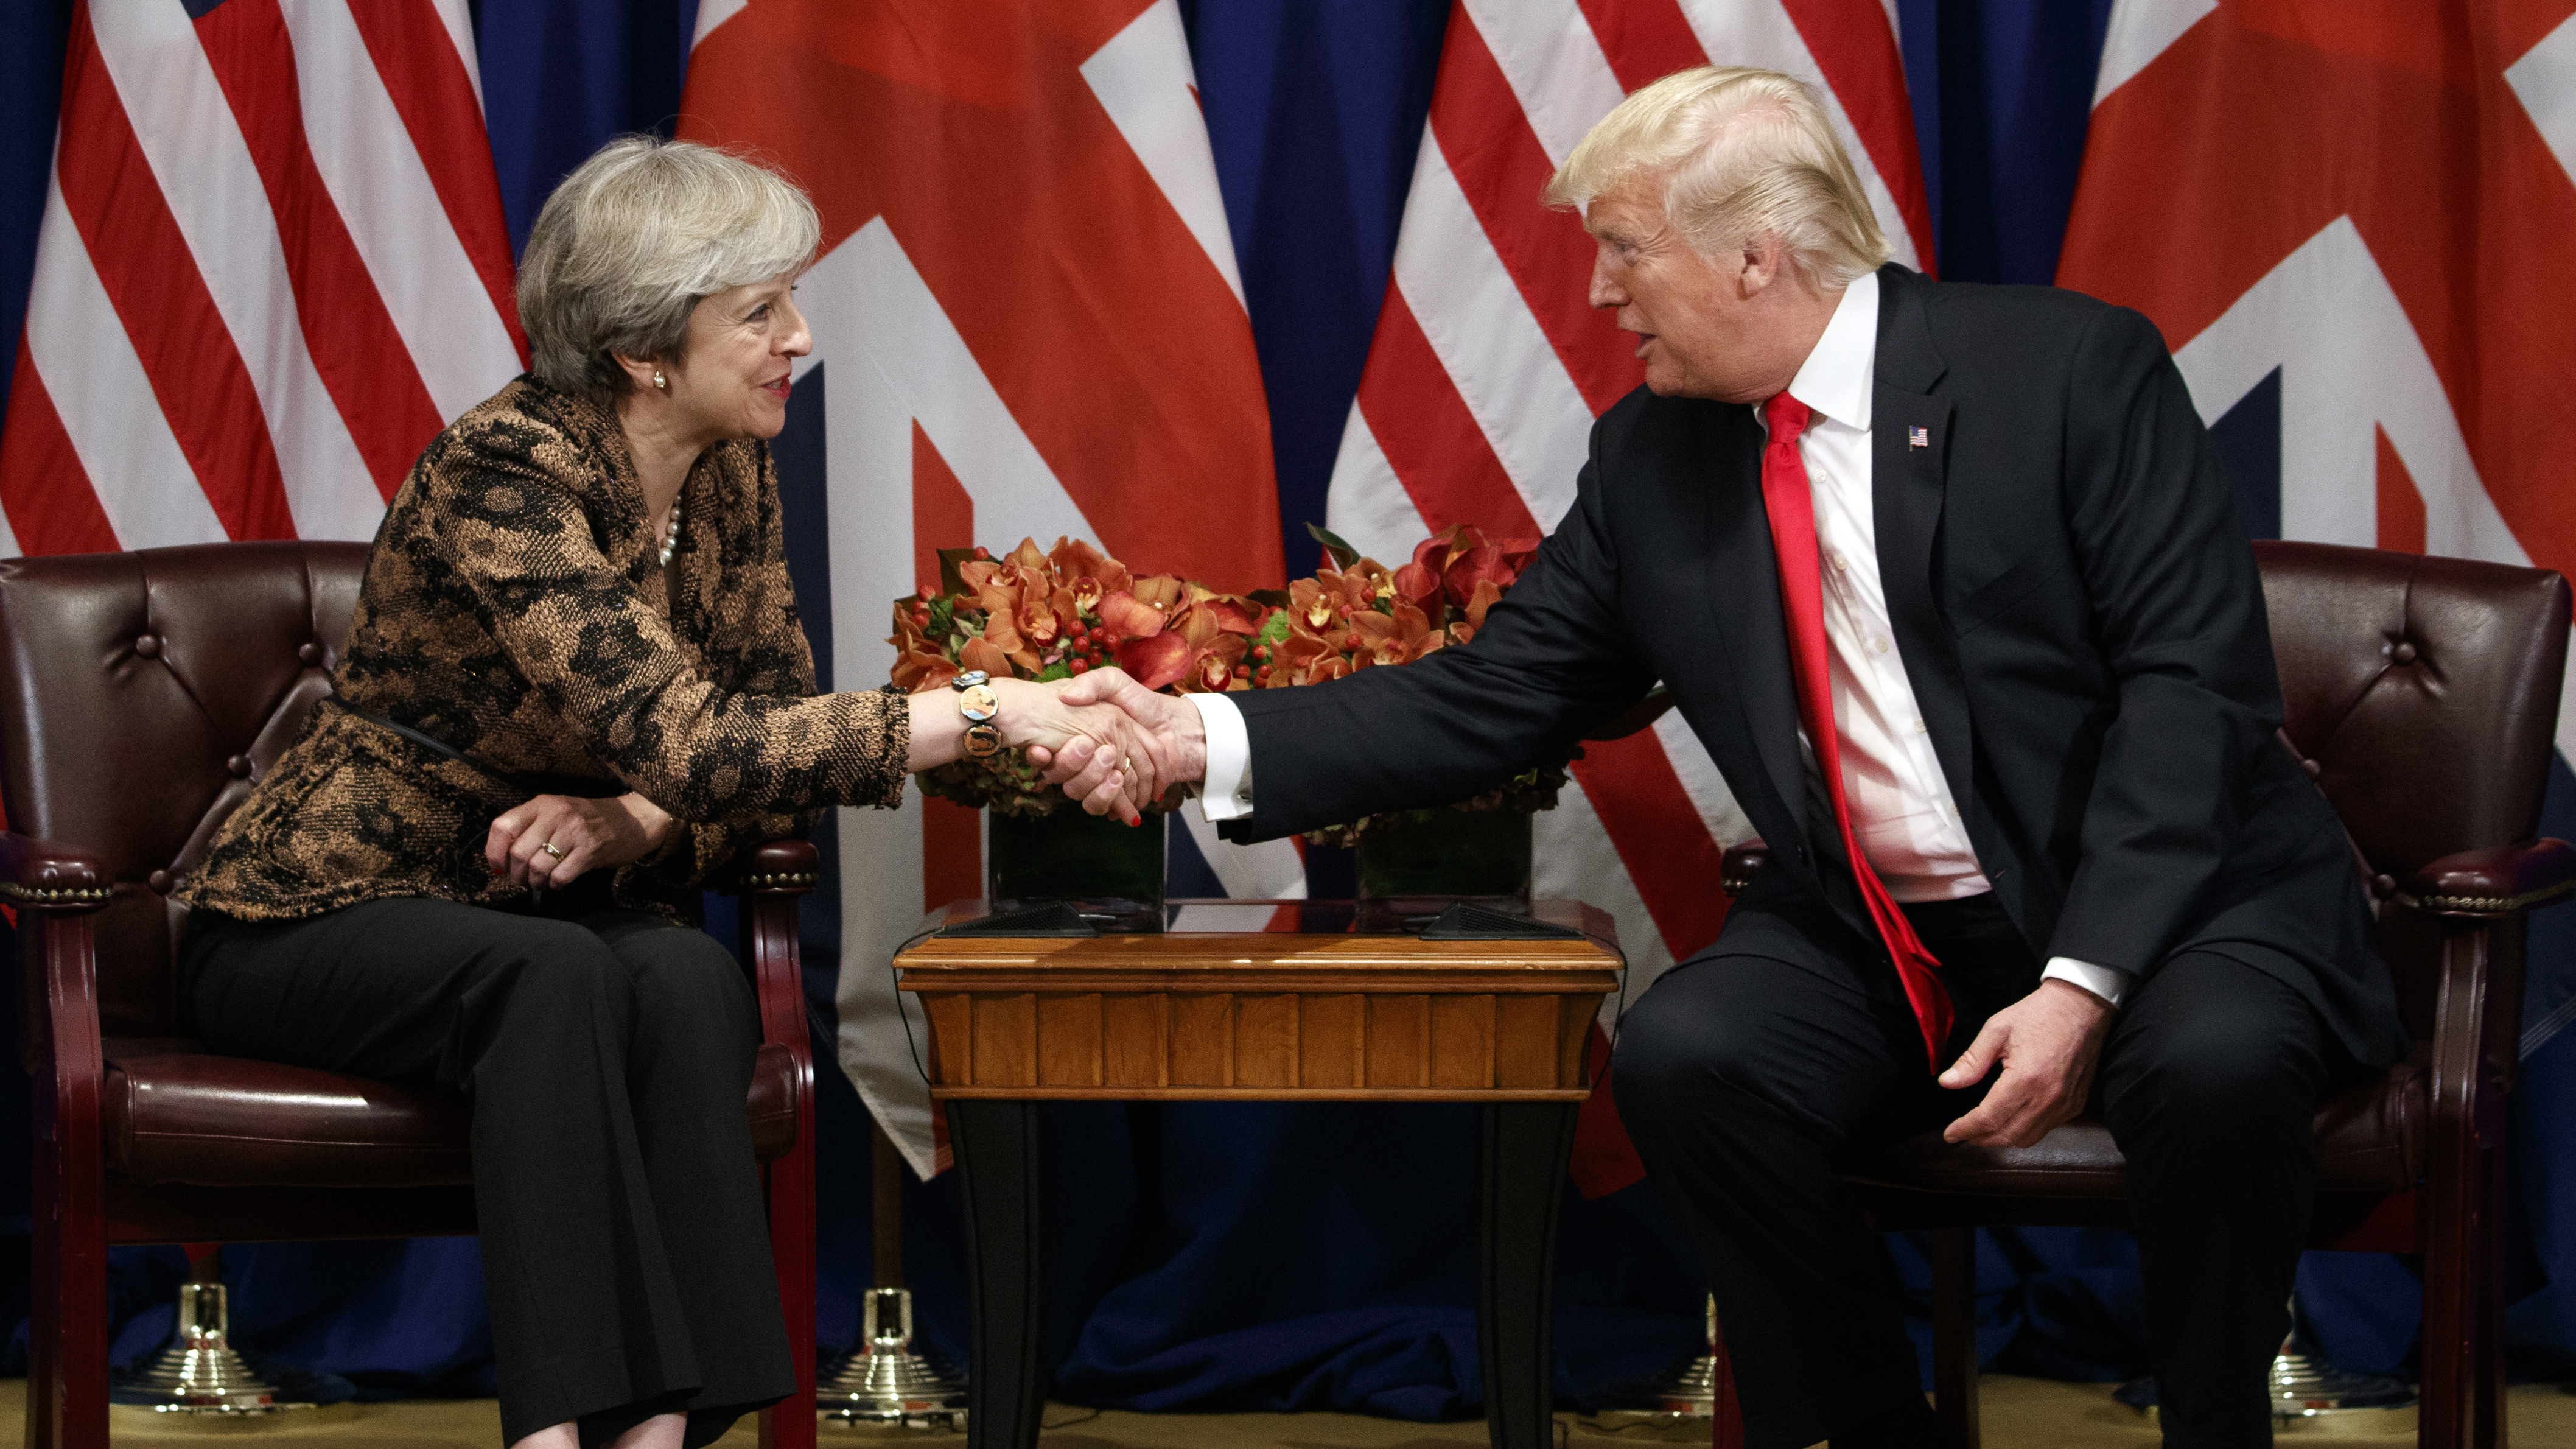 President Trump shakes hands with British Prime Minister Theresa May during their meeting at the Palace Hotel during the United Nations General Assembly, in September.